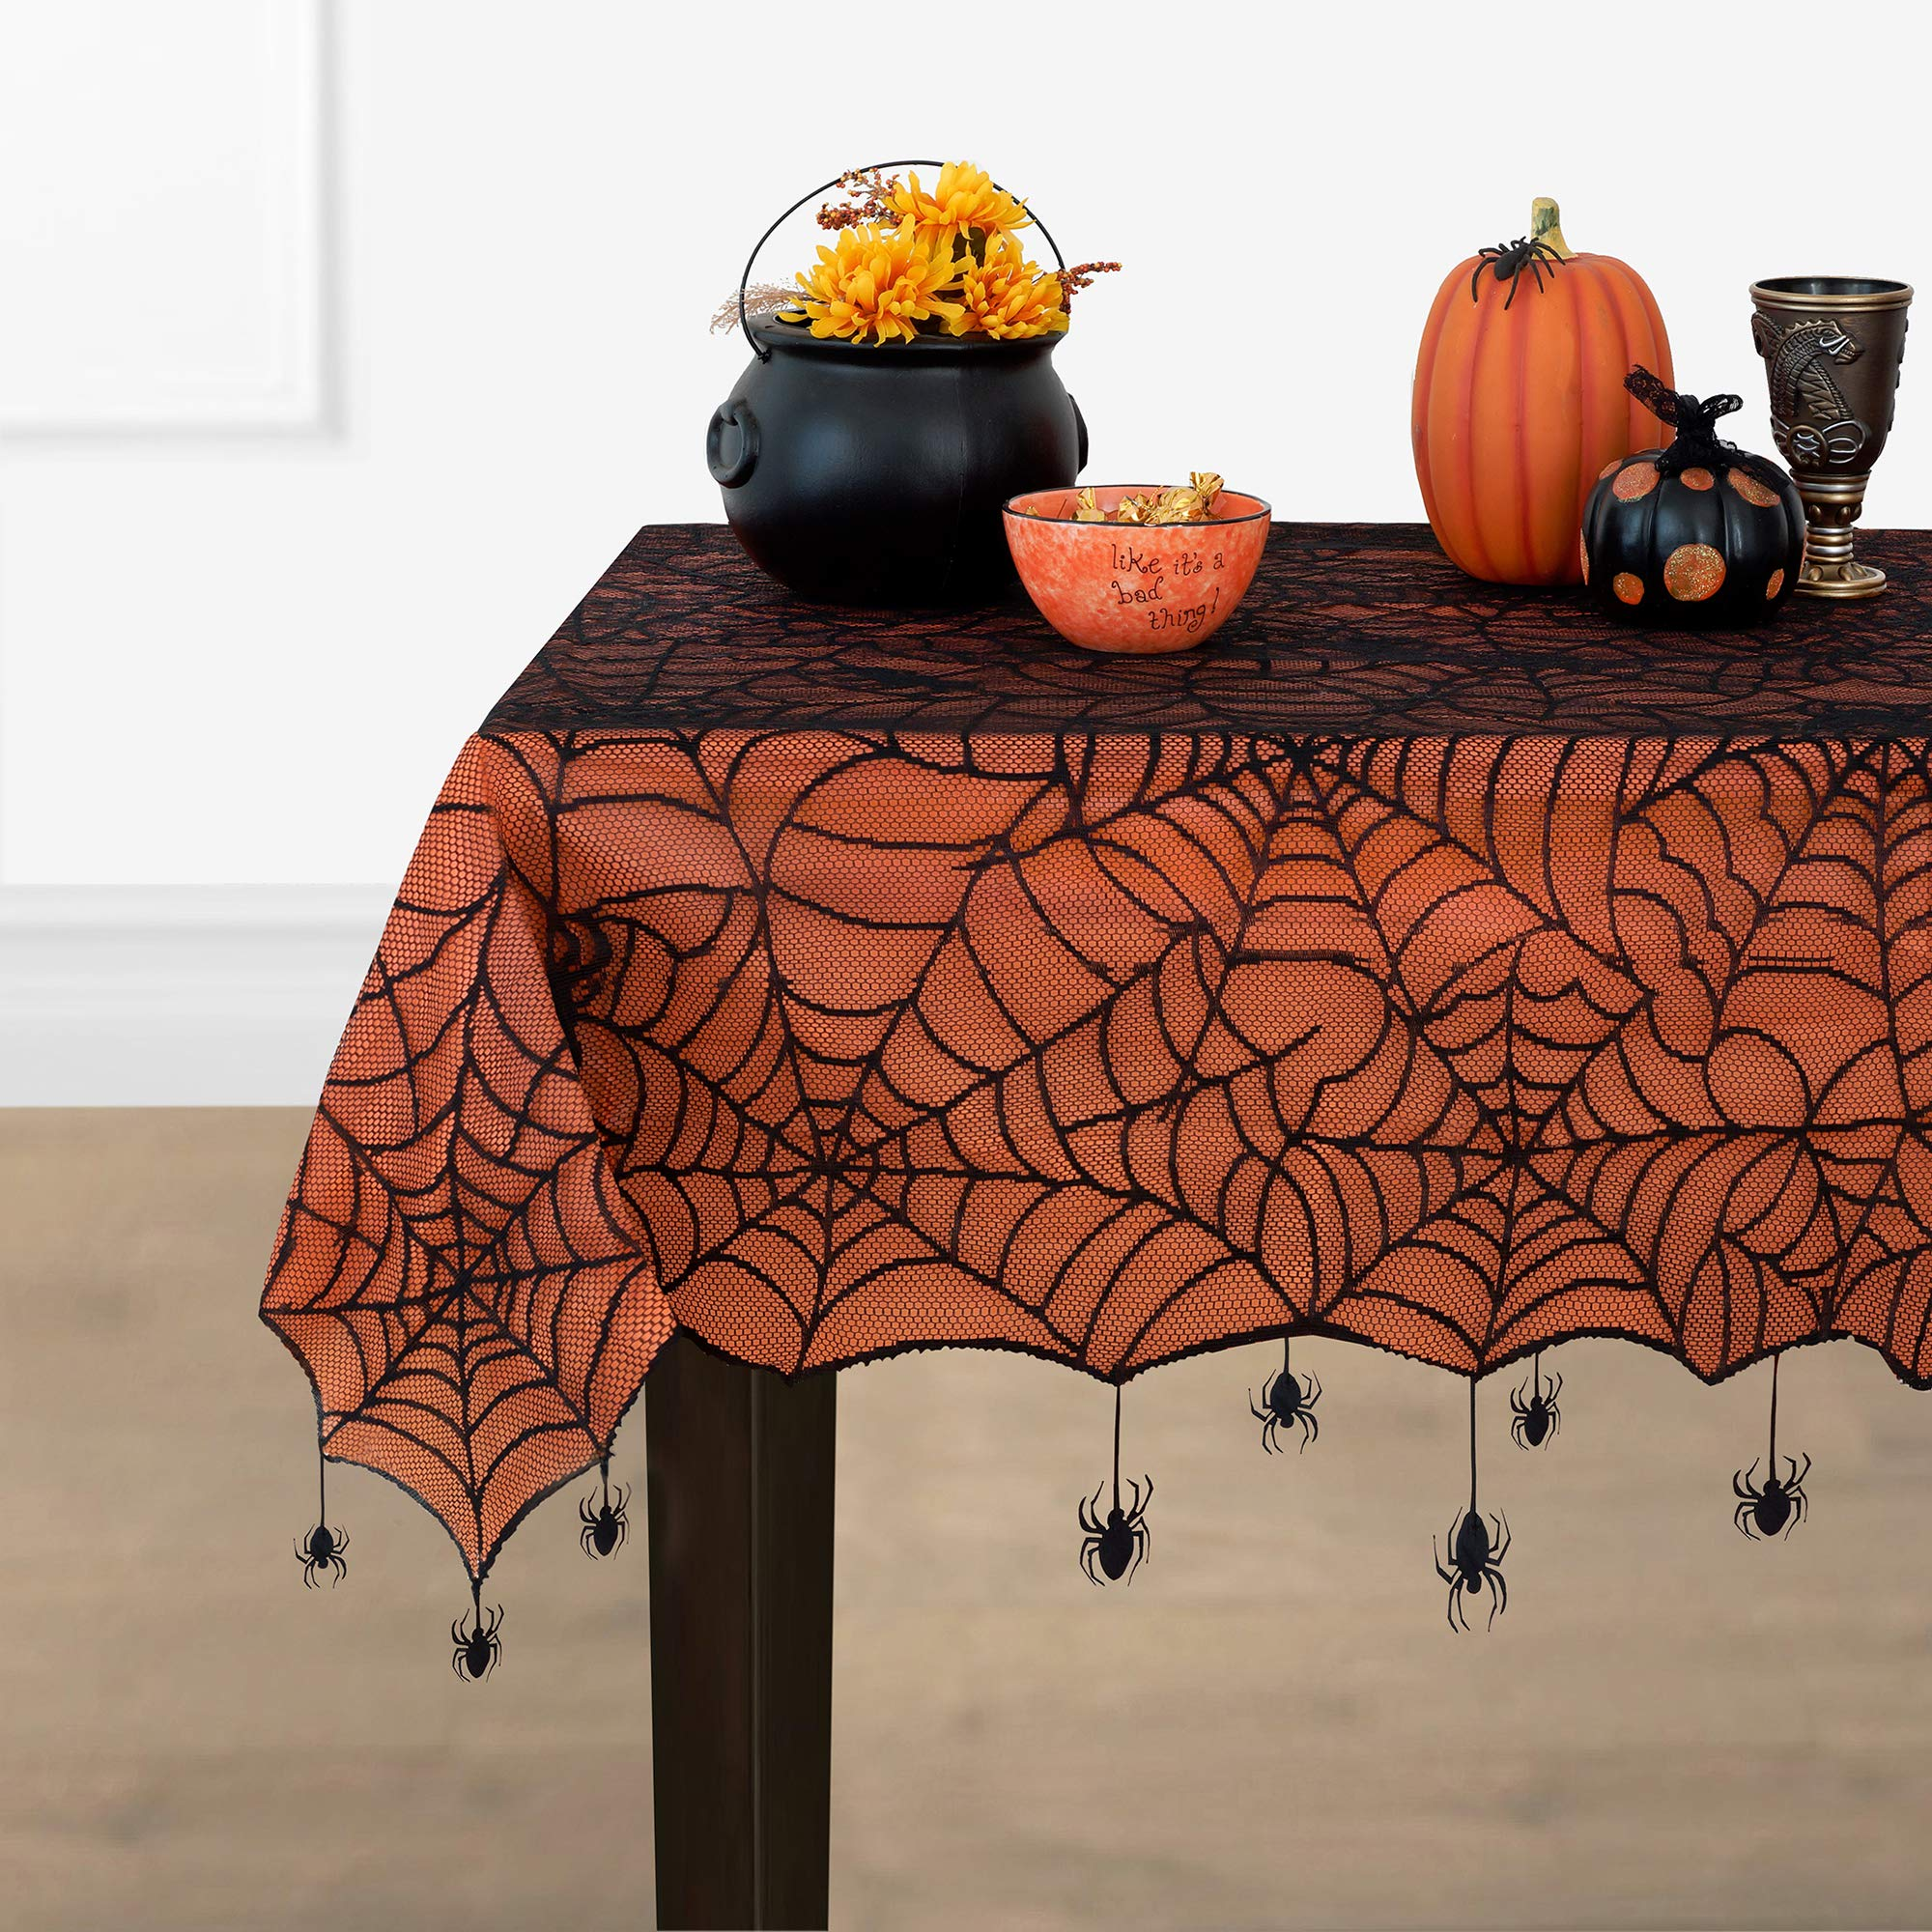 Elrene Home Fashions Crawling Halloween Spider Lace Lined Tablecloth, 70'' Round, Black/Orange by Elrene